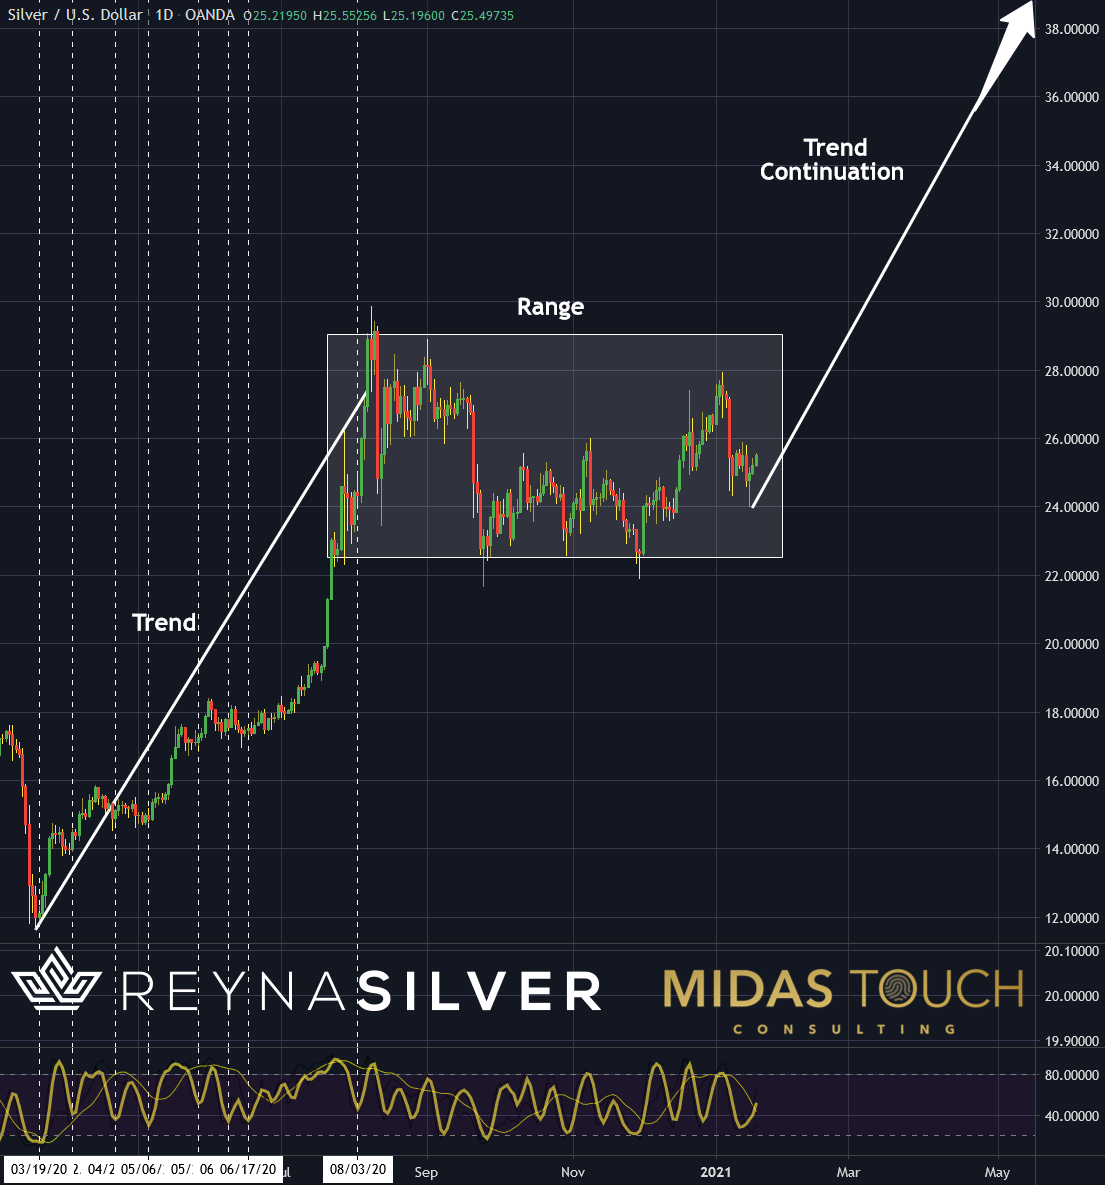 https://www.midastouch-consulting.com/wp-content/uploads/2021/01/Chart-2-Silver-in-US-Dollar-dayly-chart-as-of-January-20th-2021..png